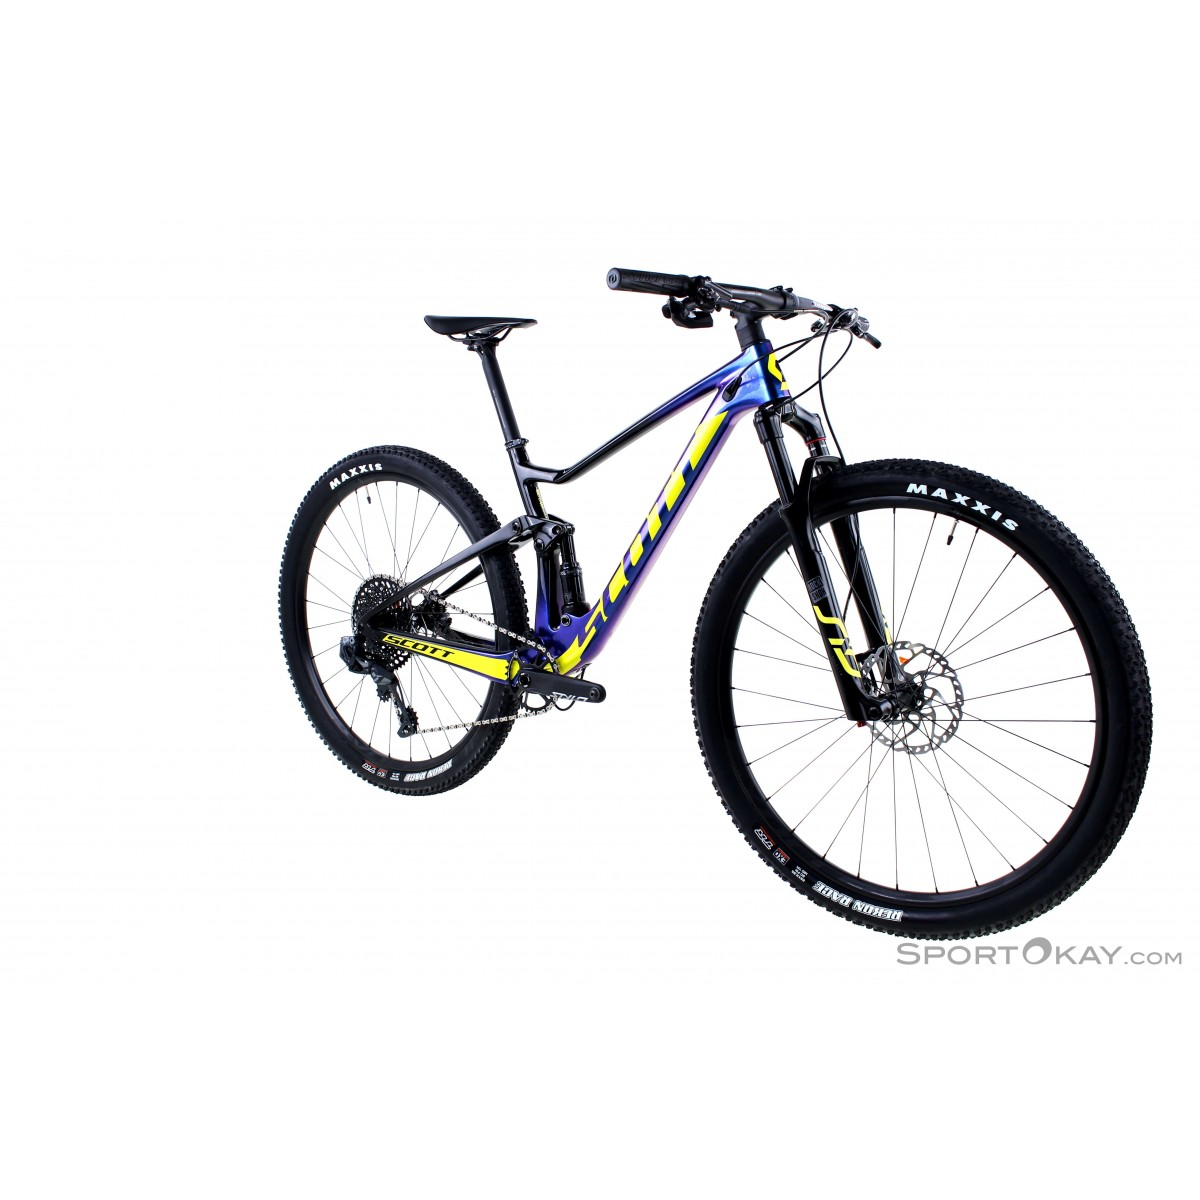 BICICLETA SCOTT SPARK RC 900 TEAM ISSUE AXS